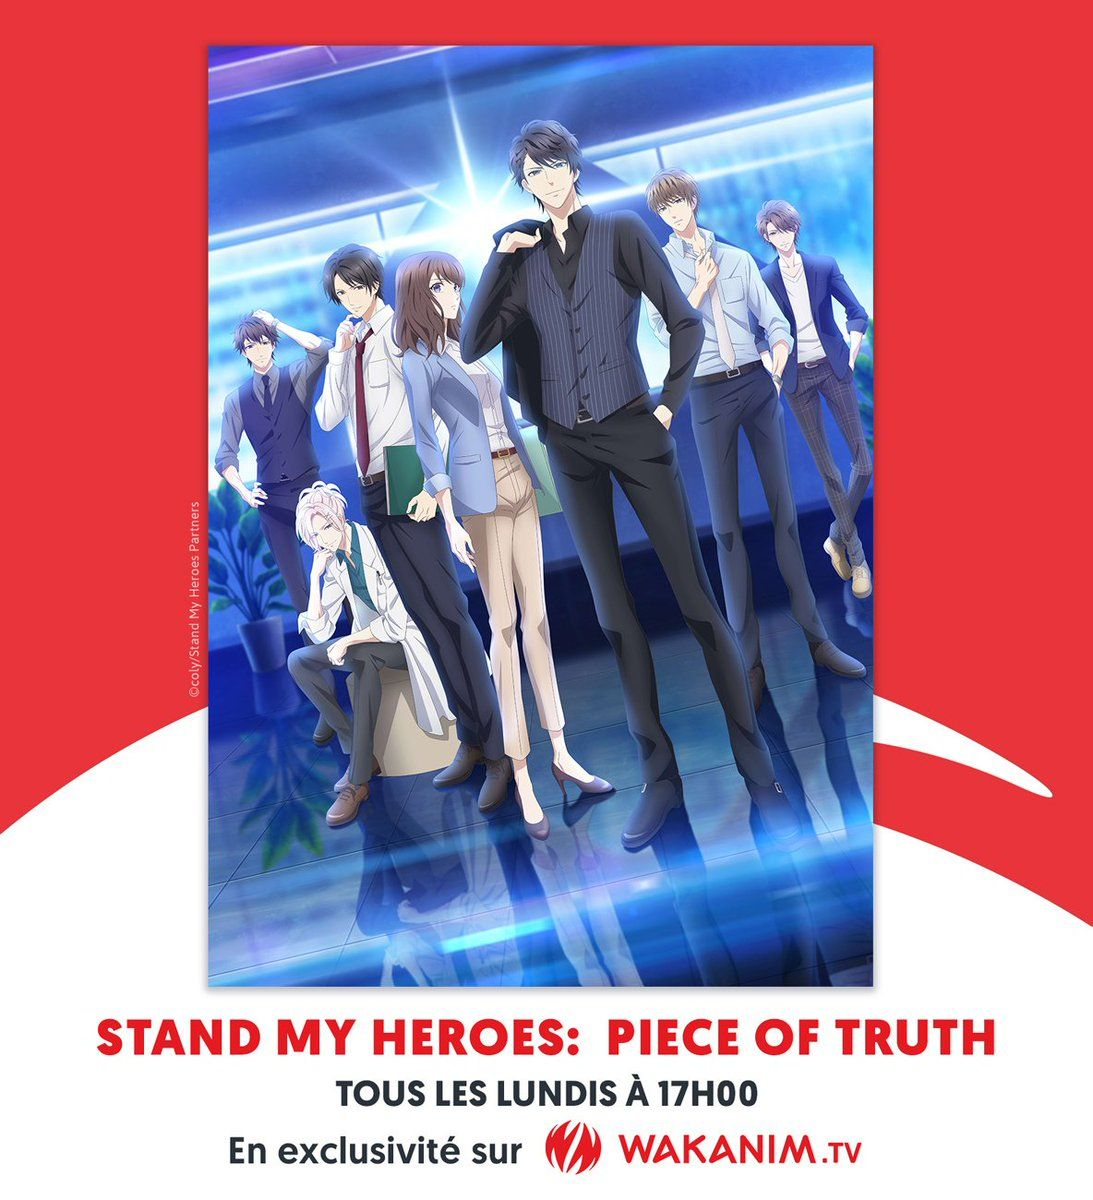 stand-my-heroes-annonce-wakanim.jpg